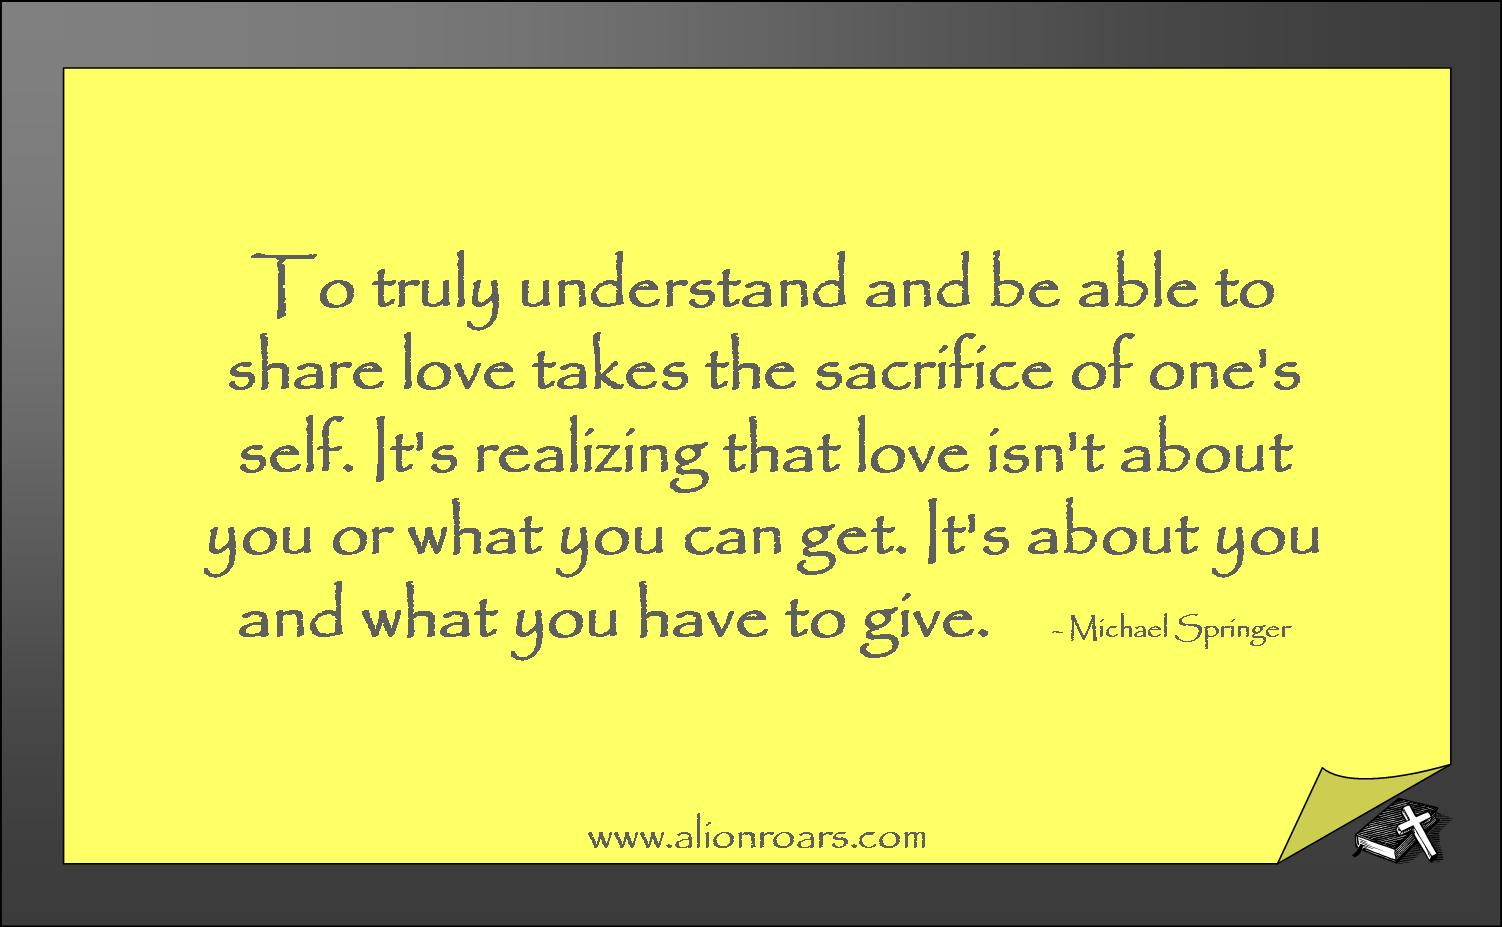 Quotes About Love Sacrifice : Quotes About Love And Sacrifice. QuotesGram